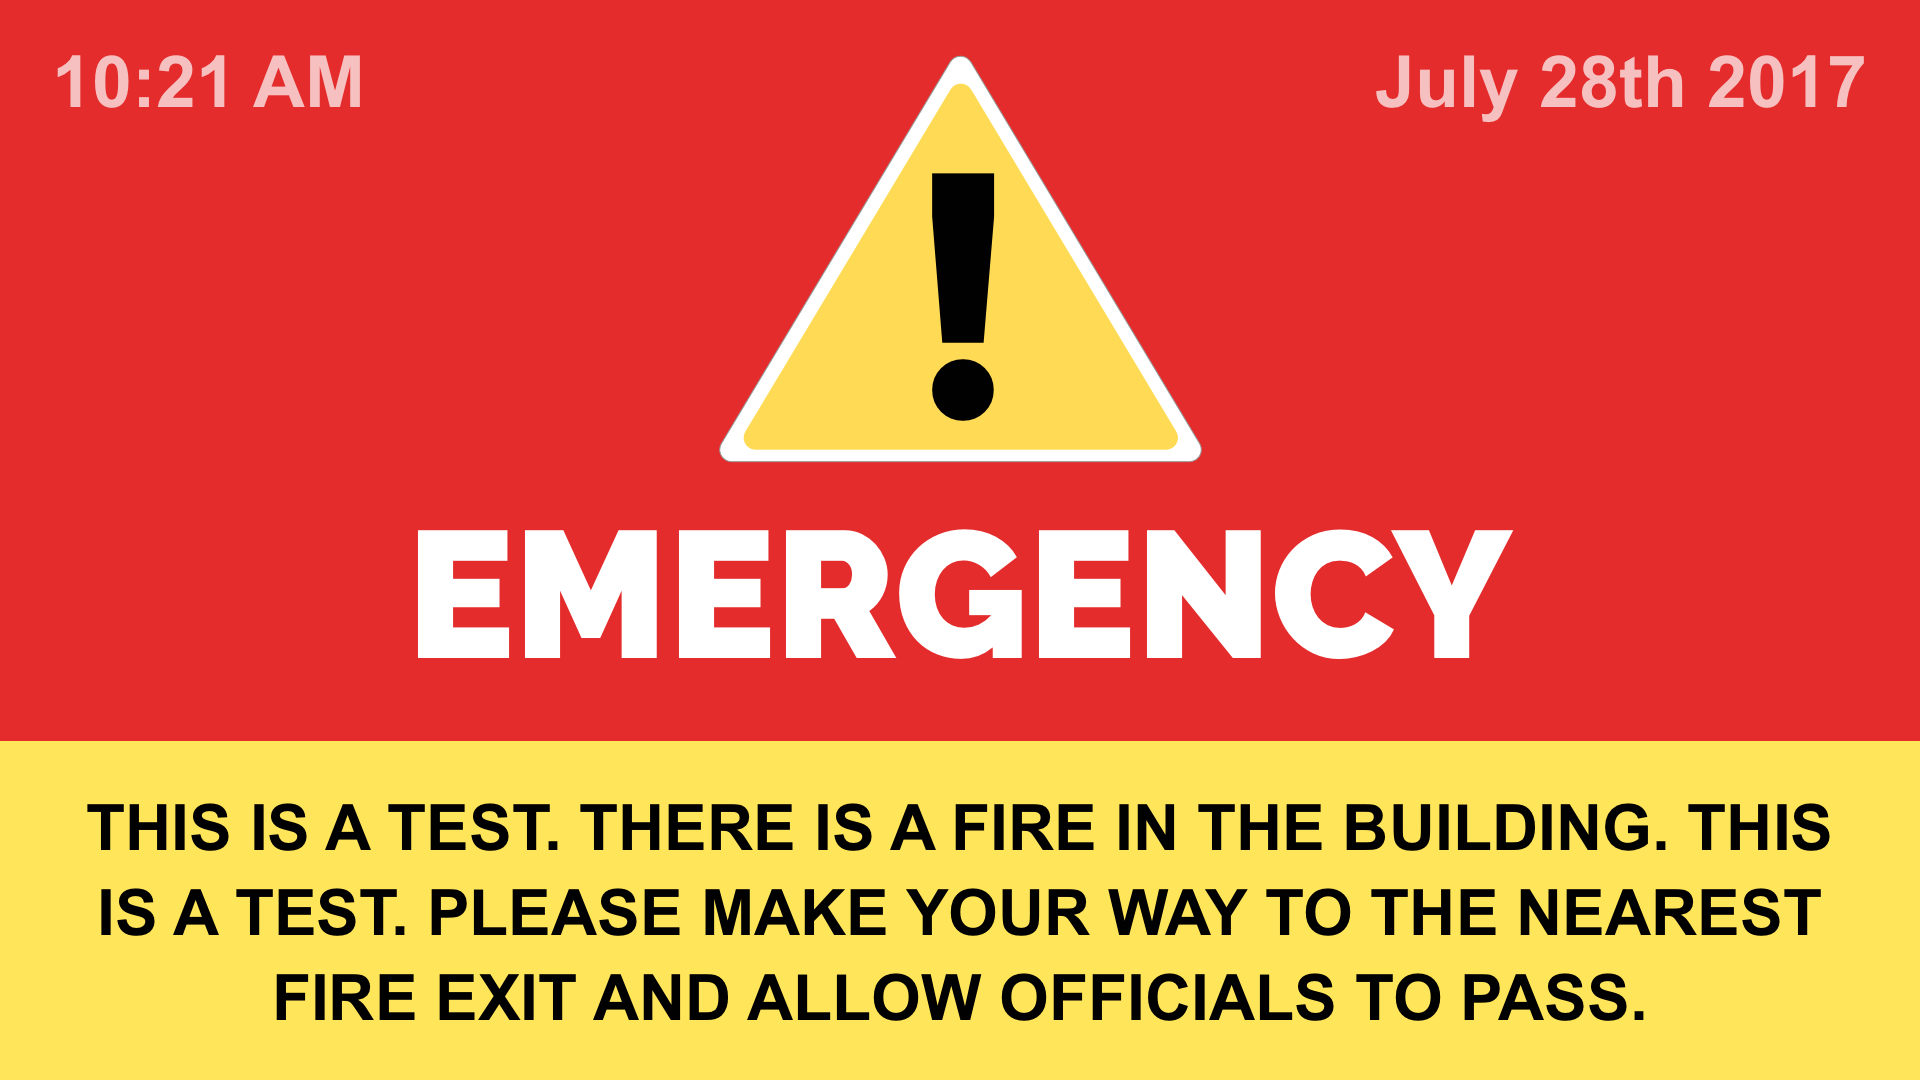 emergency-notification-digital-signage-template